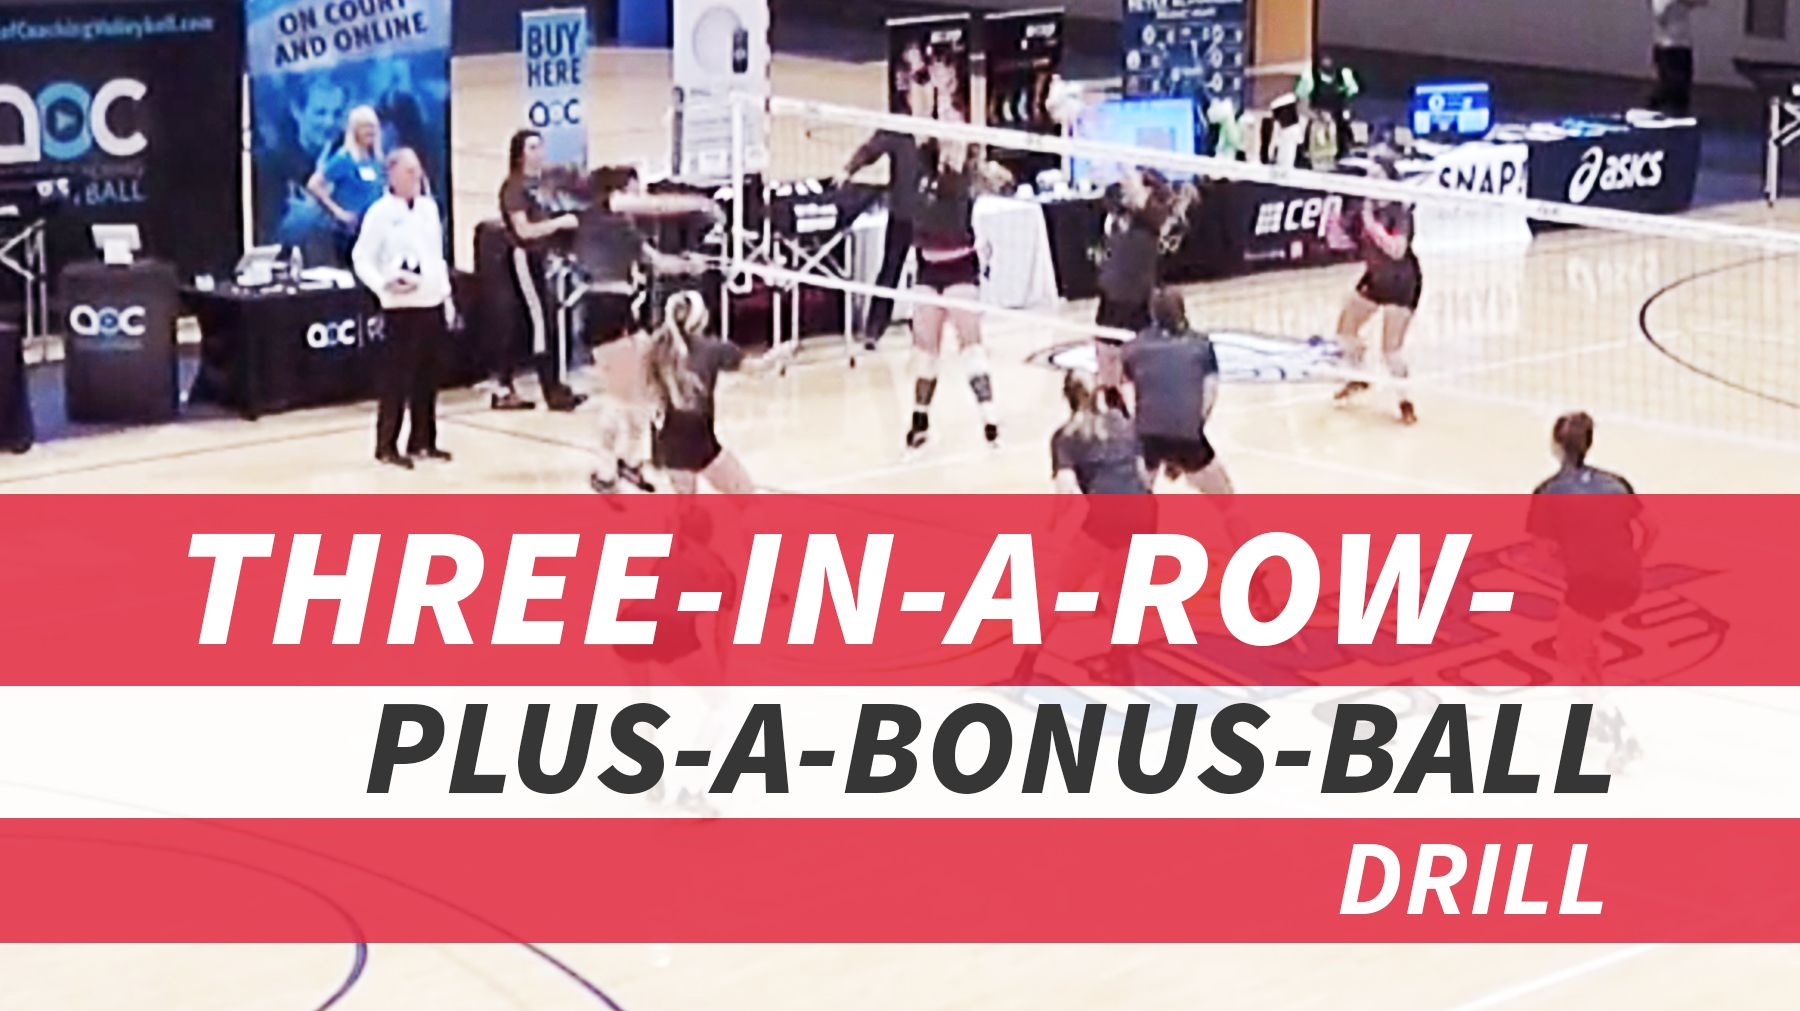 Three In A Row Plus A Bonus Ball To Train Success On Match Point Volleyball Drills Coaching Volleyball Volleyball Training